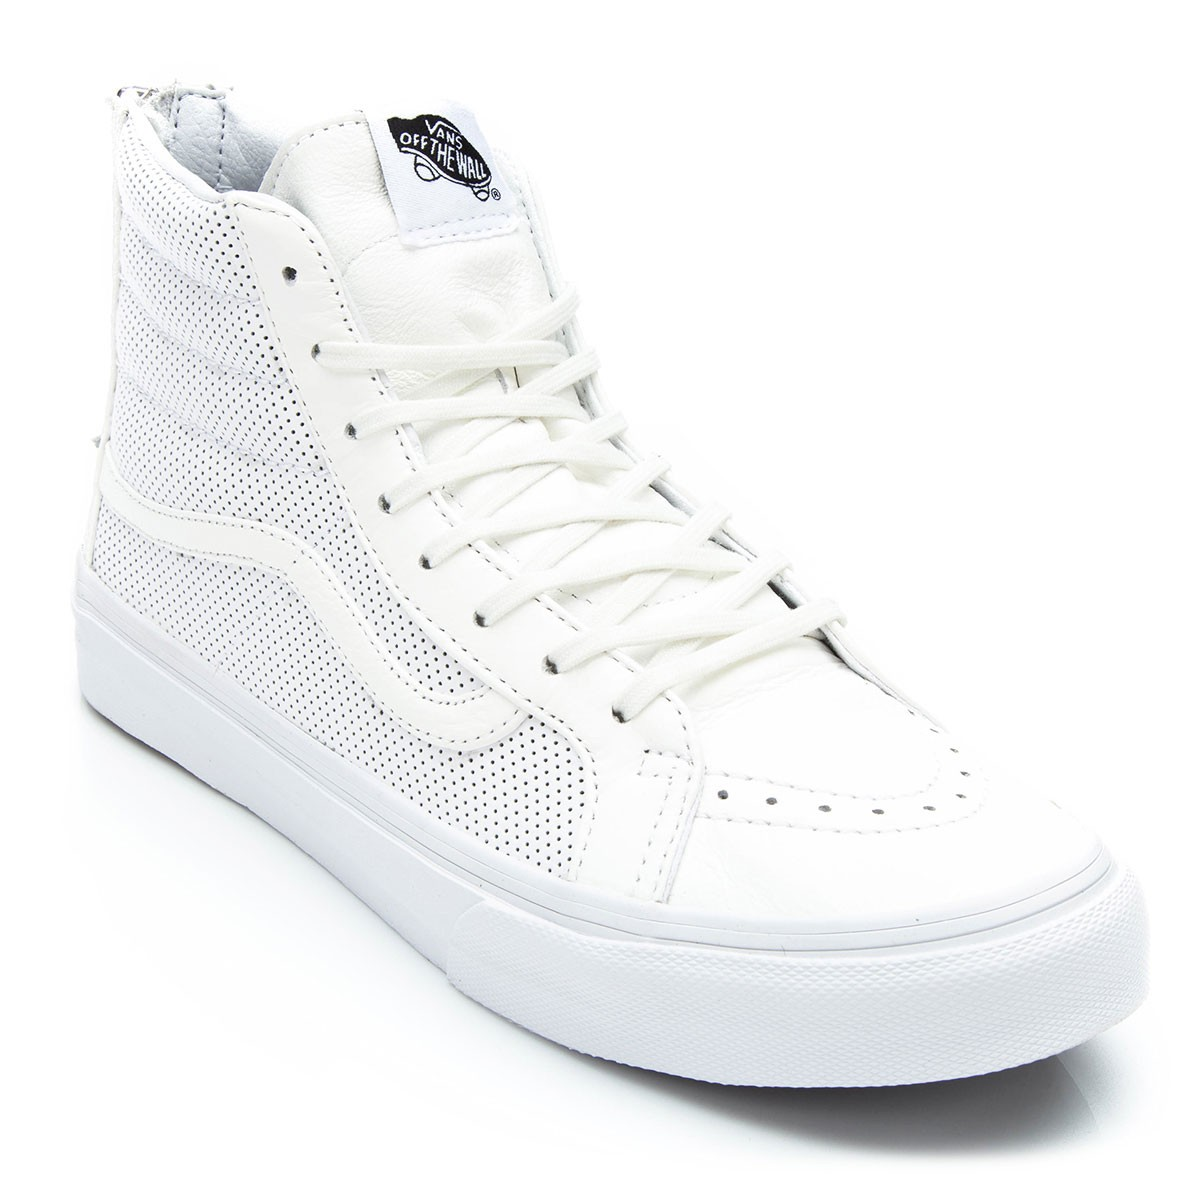 vans perforated leather sk8-hi slim zip shoe